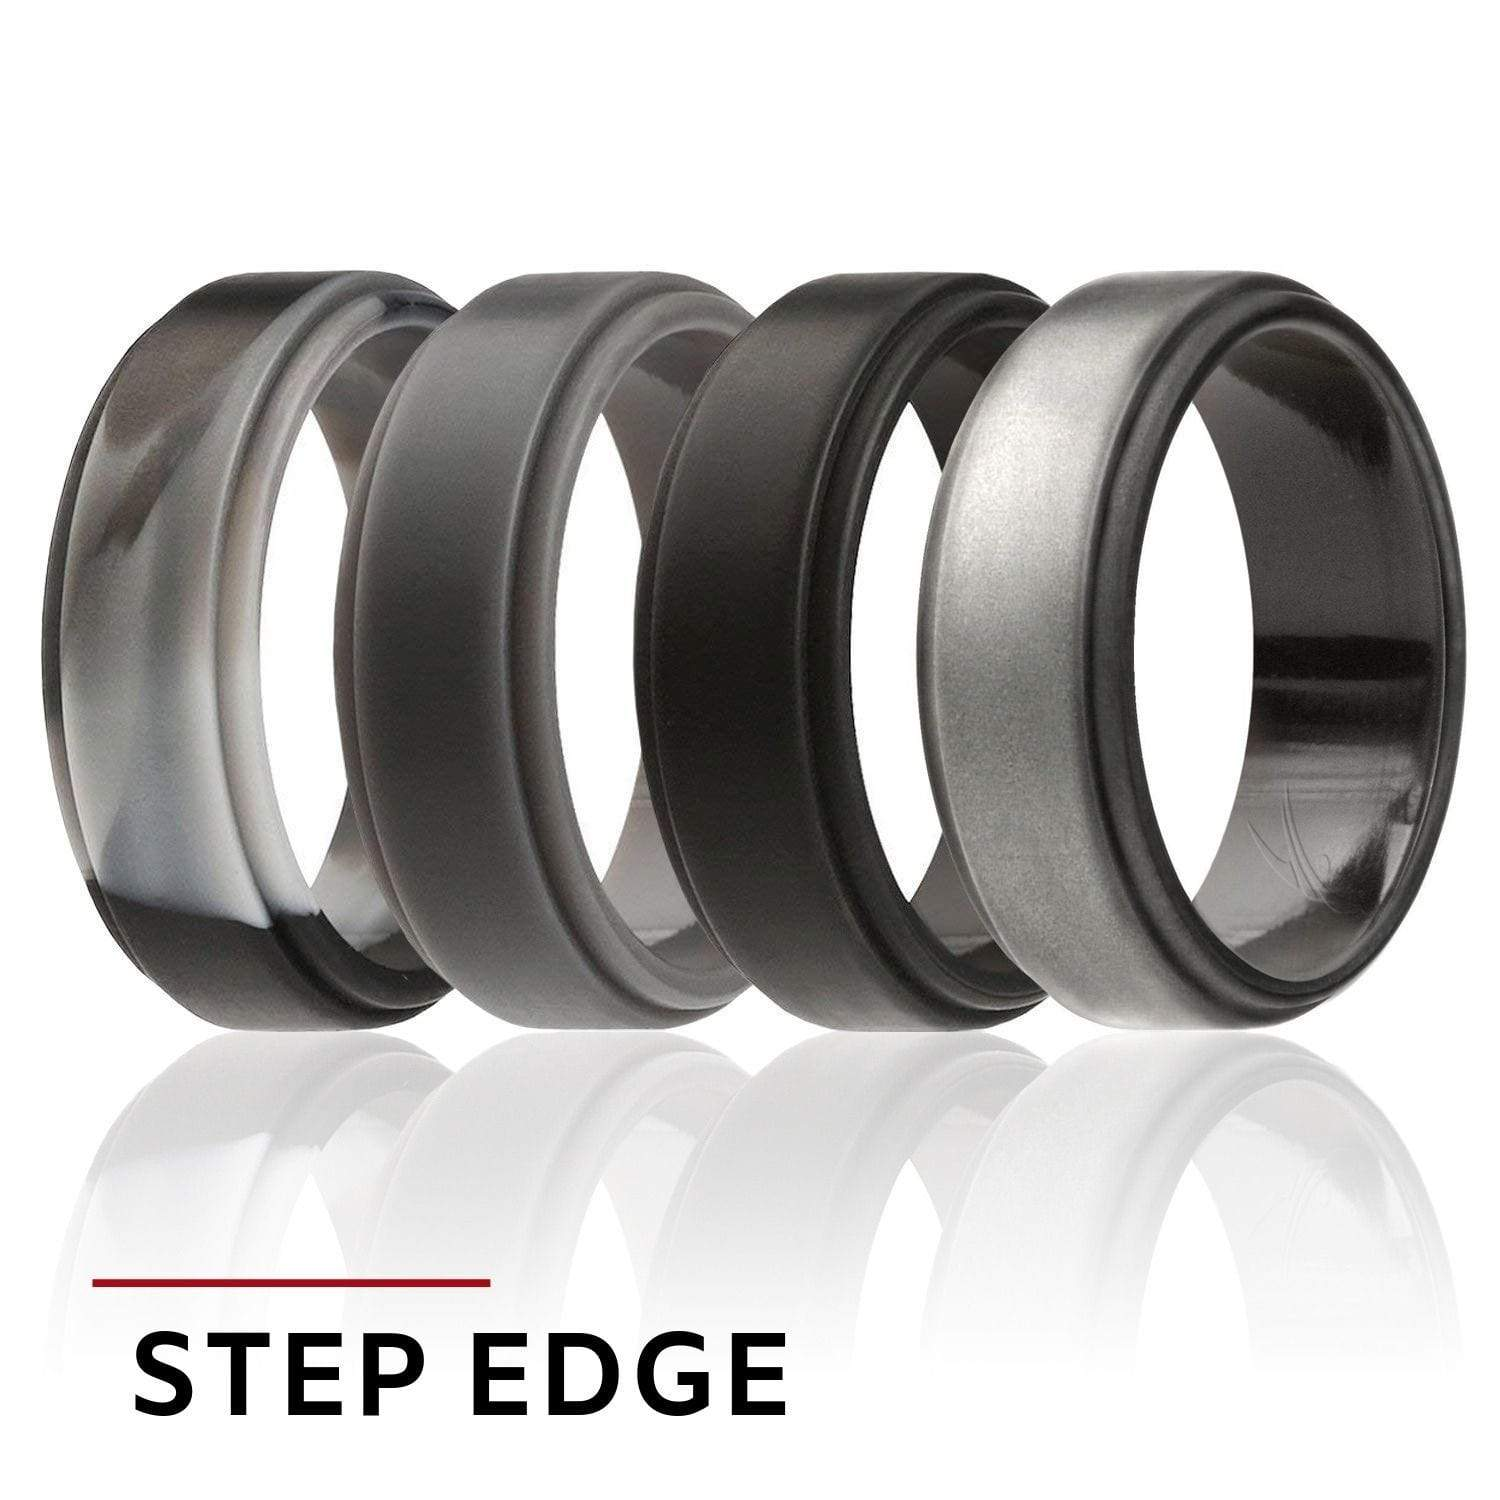 Men S Silicone Wedding Band.Roq Silicone Rings Shop Affordable Rubber Silicone Wedding Bands